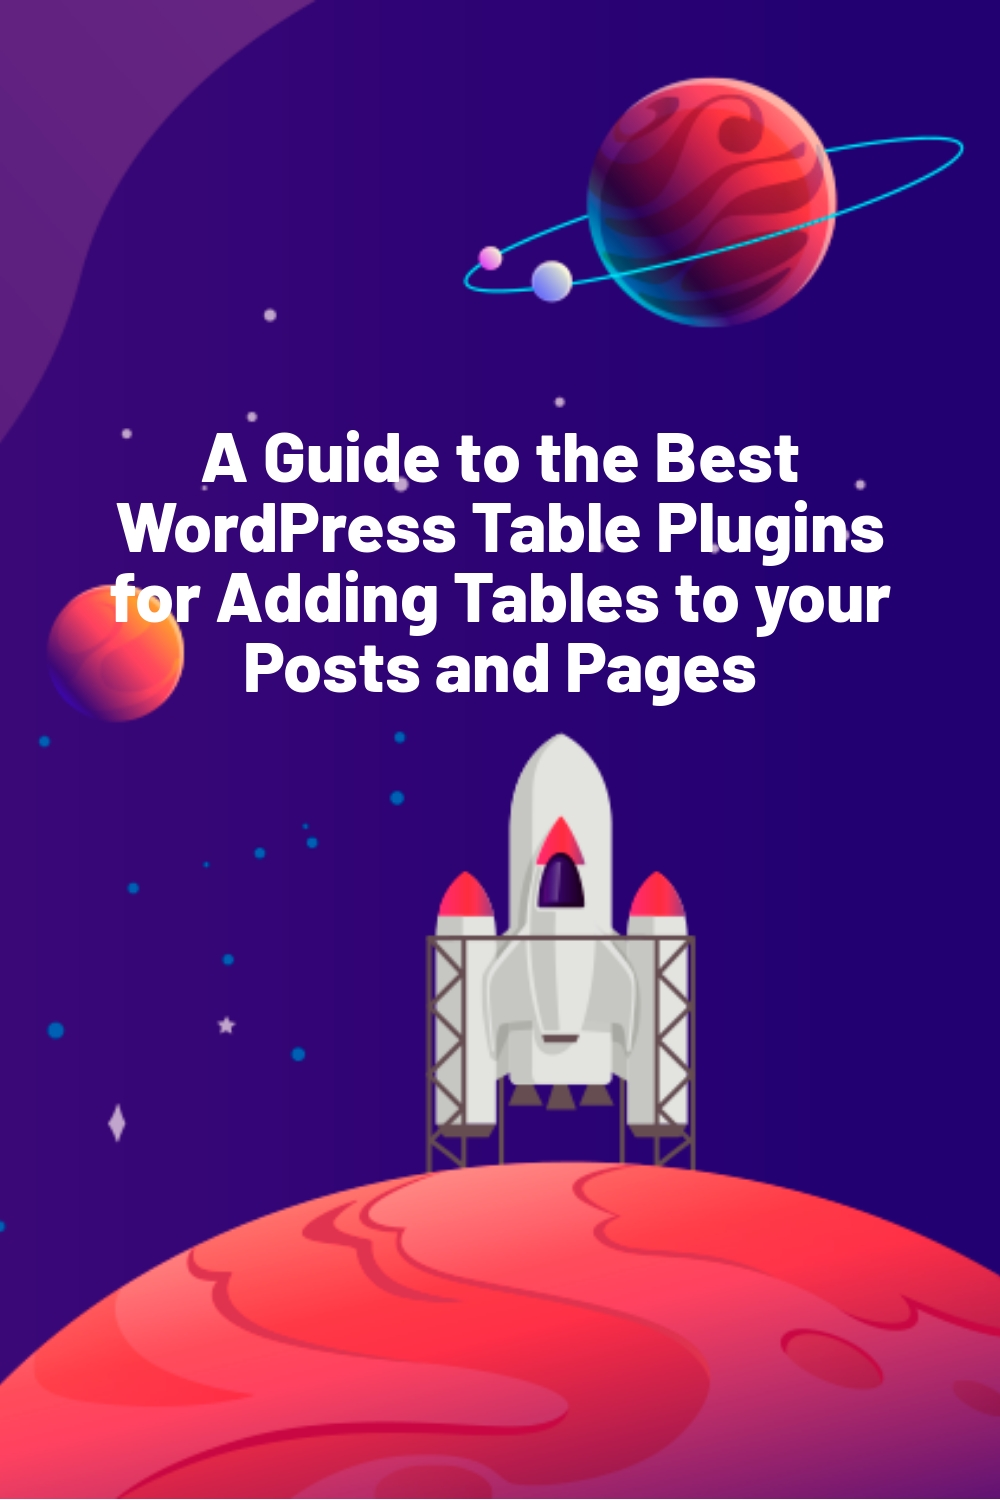 A Guide to the Best WordPress Table Plugins for Adding Tables to your Posts and Pages